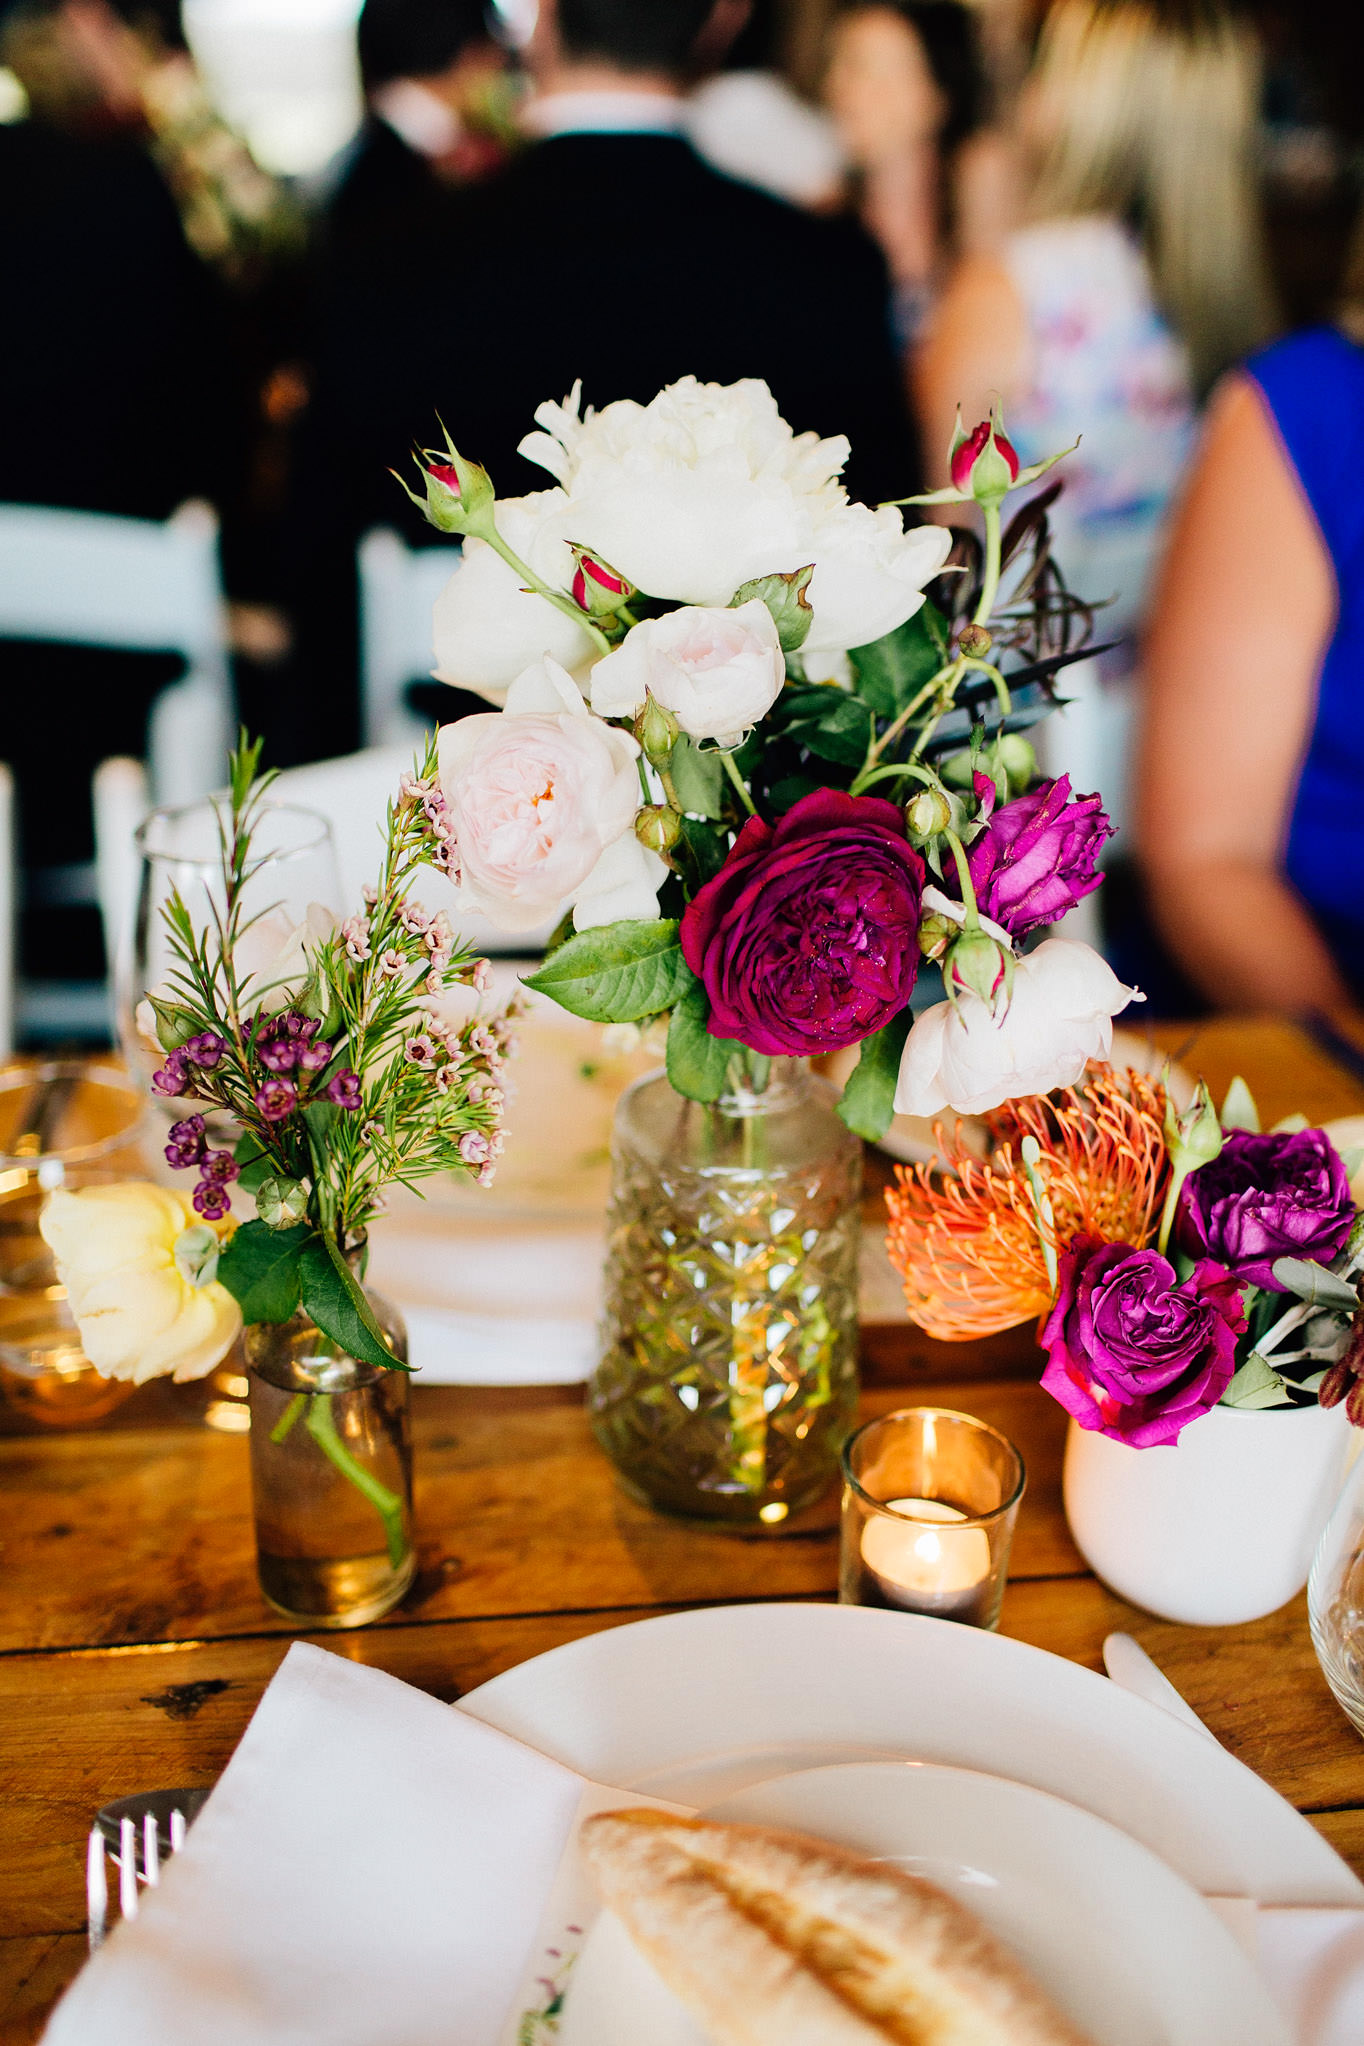 TocalHomestead_WeddingPhotography_LaurenAnnePhotography-1135.jpg